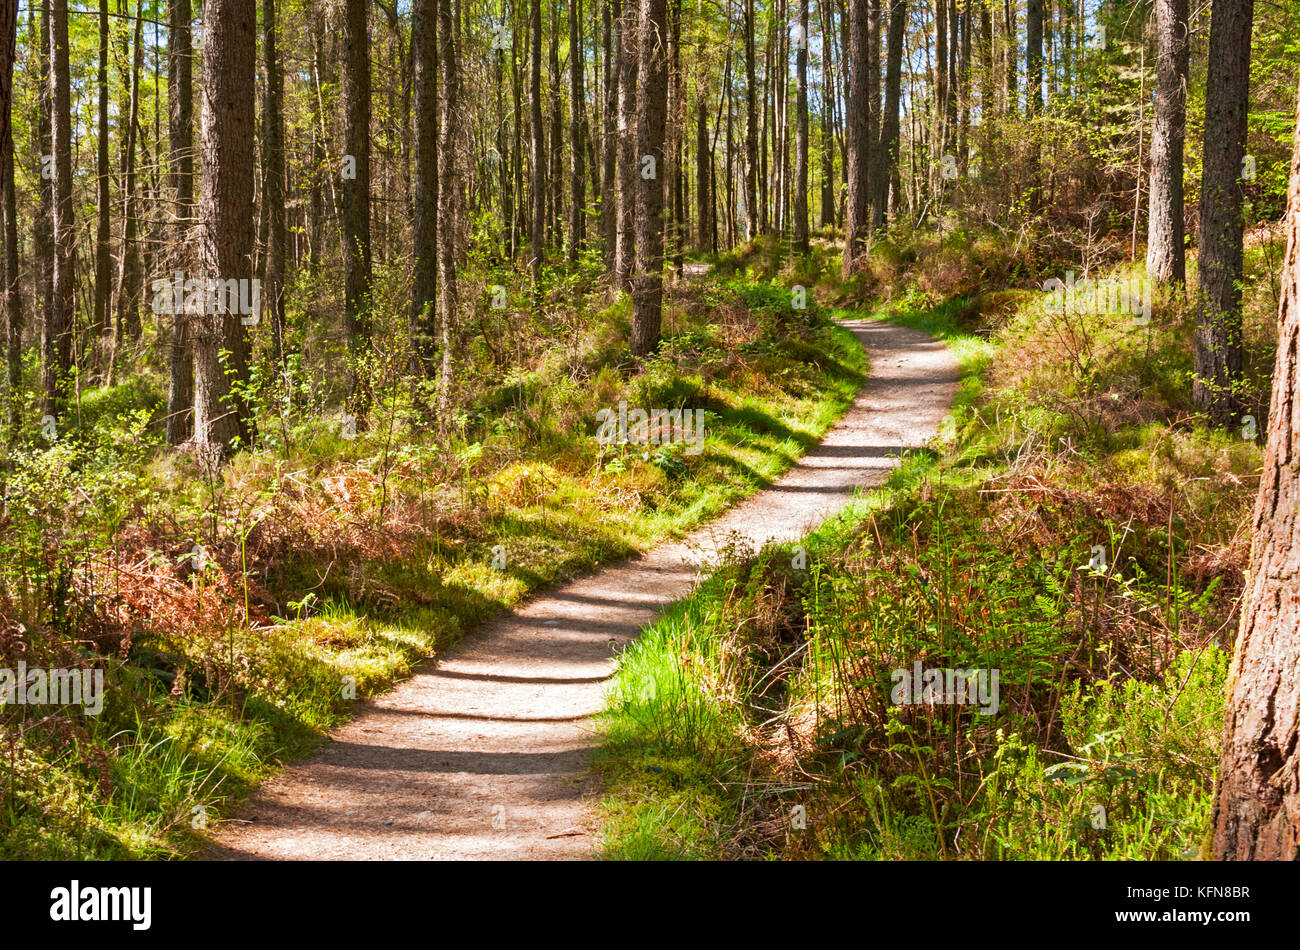 The path of the West HIghland Way leading through a forest, Scotland - Stock Image